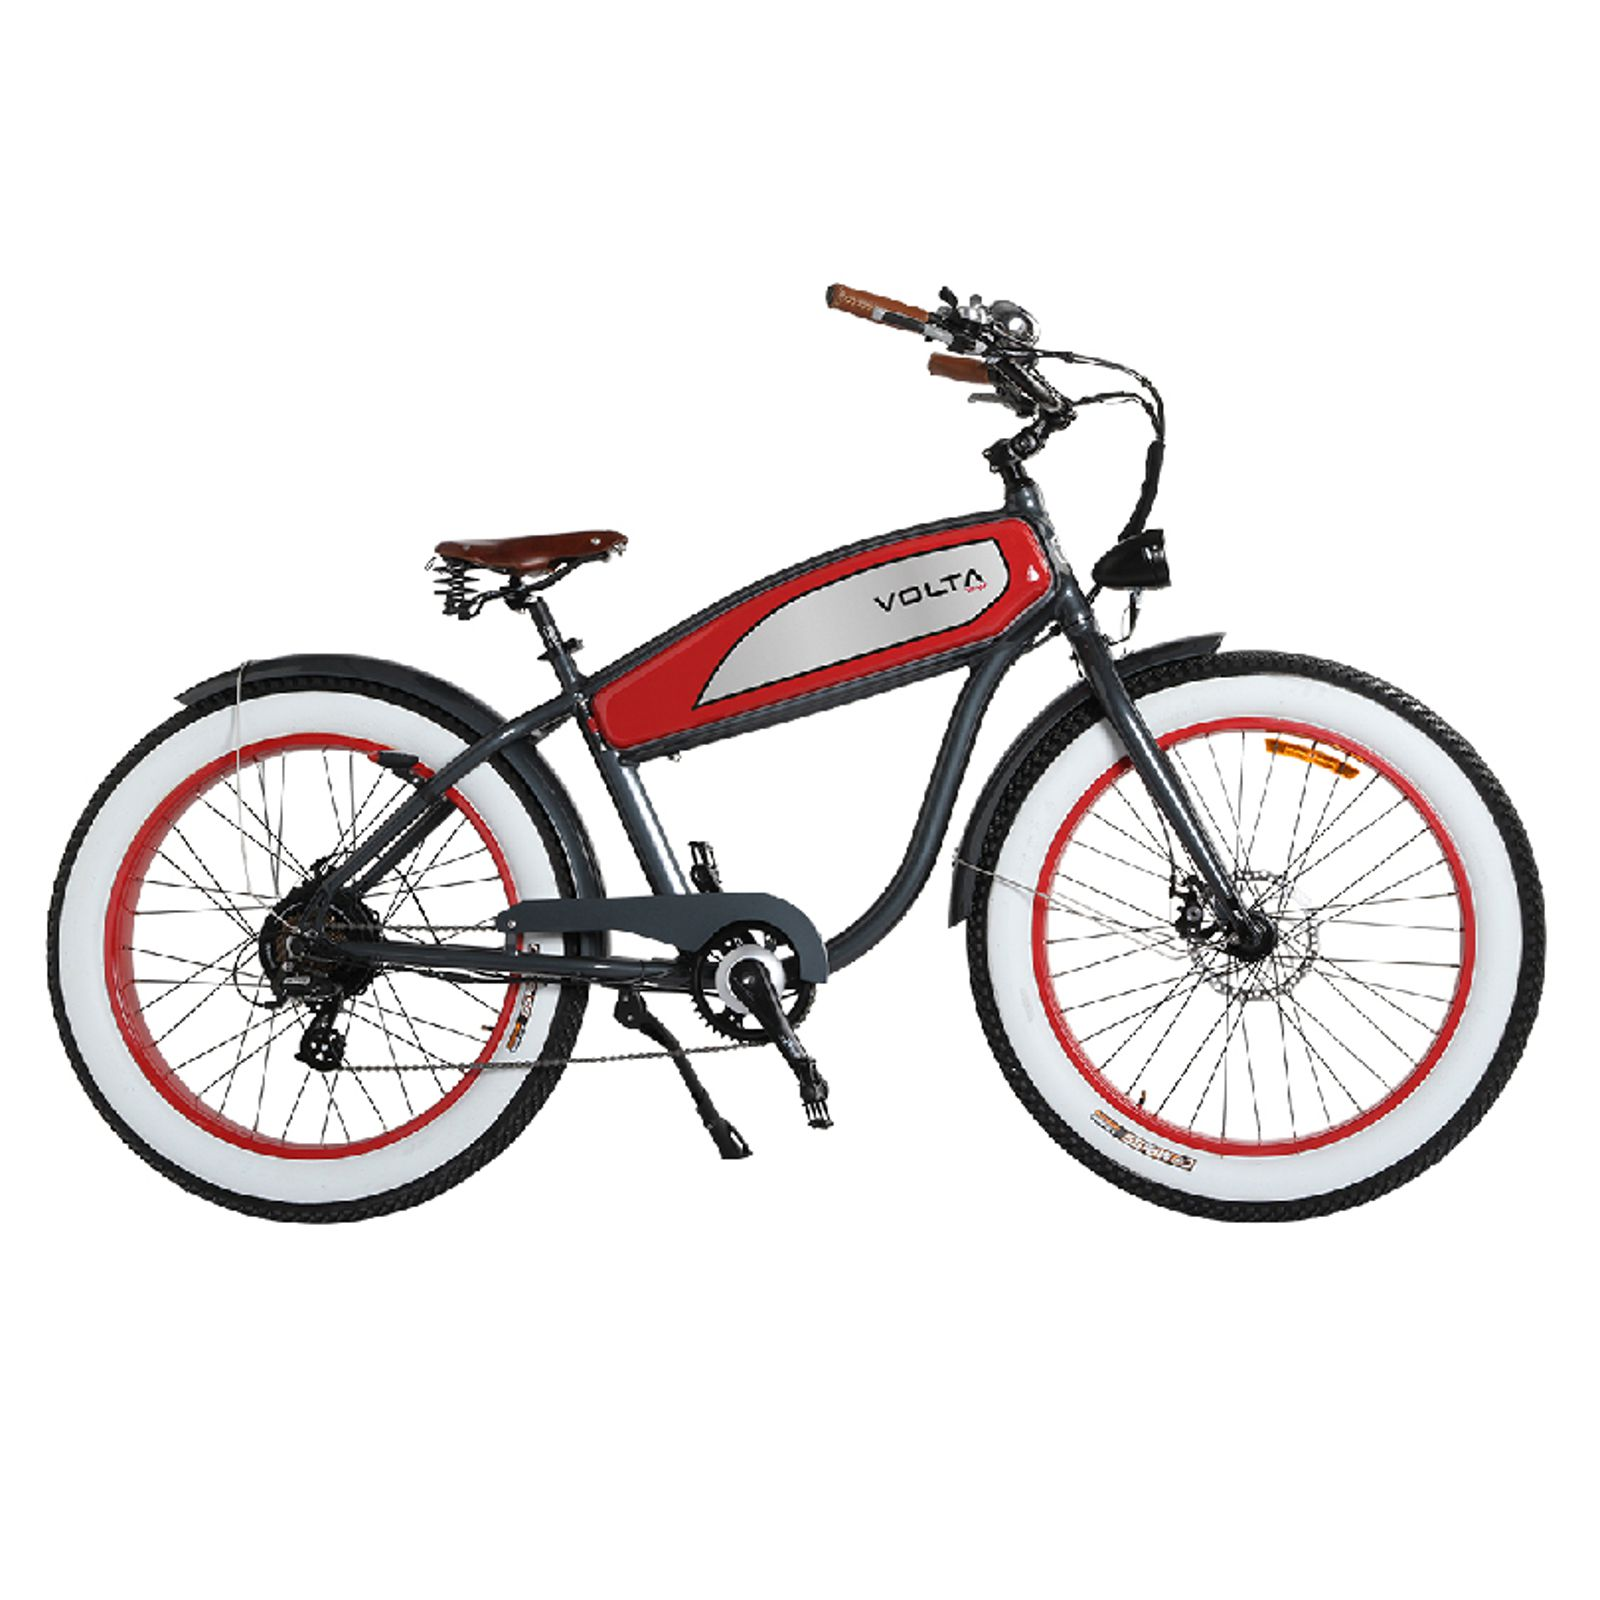 VOLTAWAY e-bike CYCLONE Retro Fatbike Beachbike